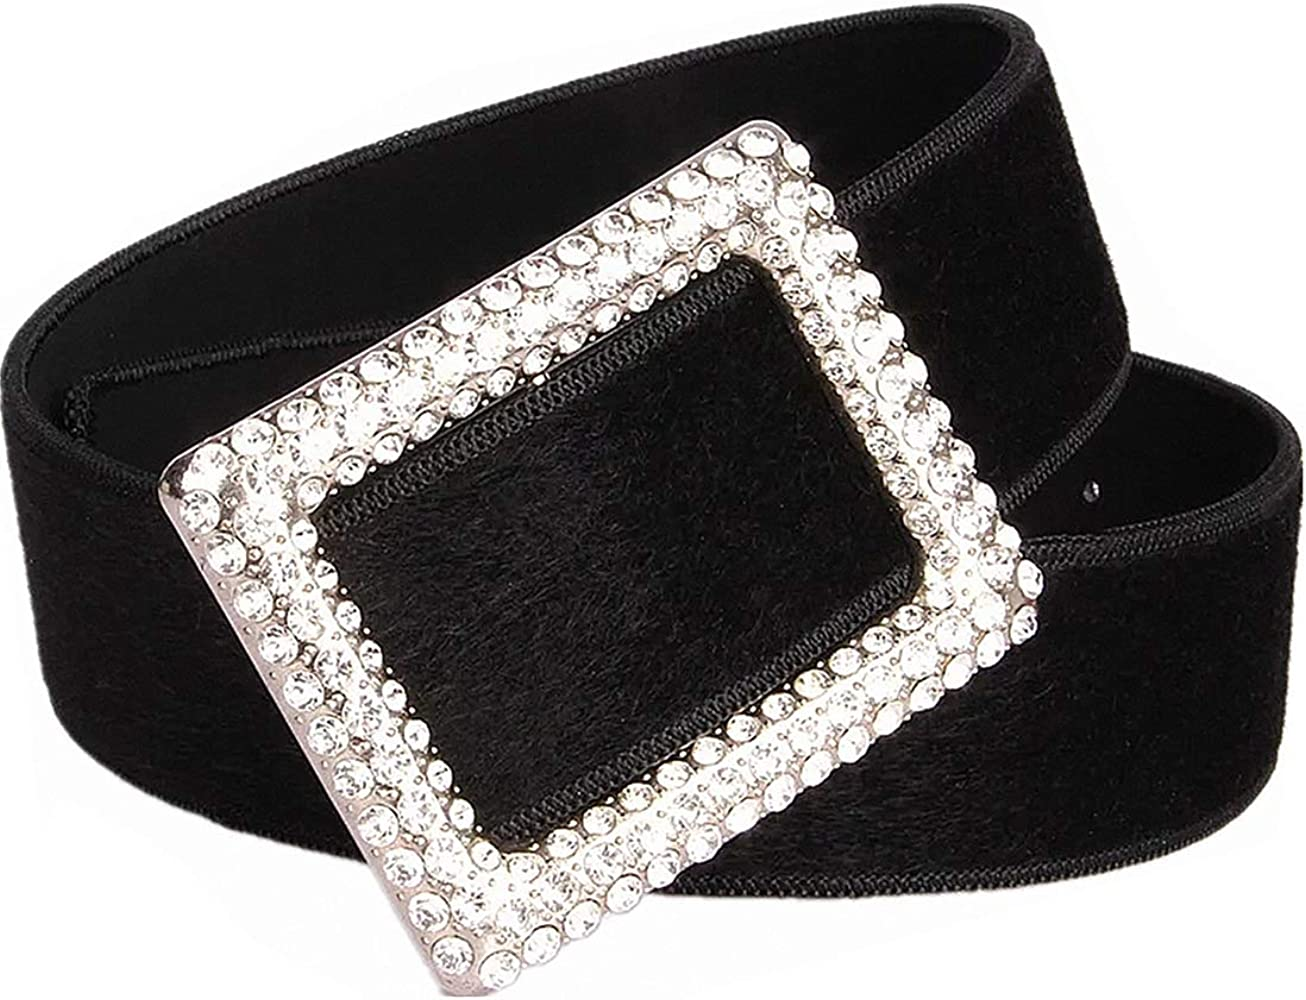 Bling Crystal Decor Pu Leather Waistband Rhinestone Belt with Square Buckle